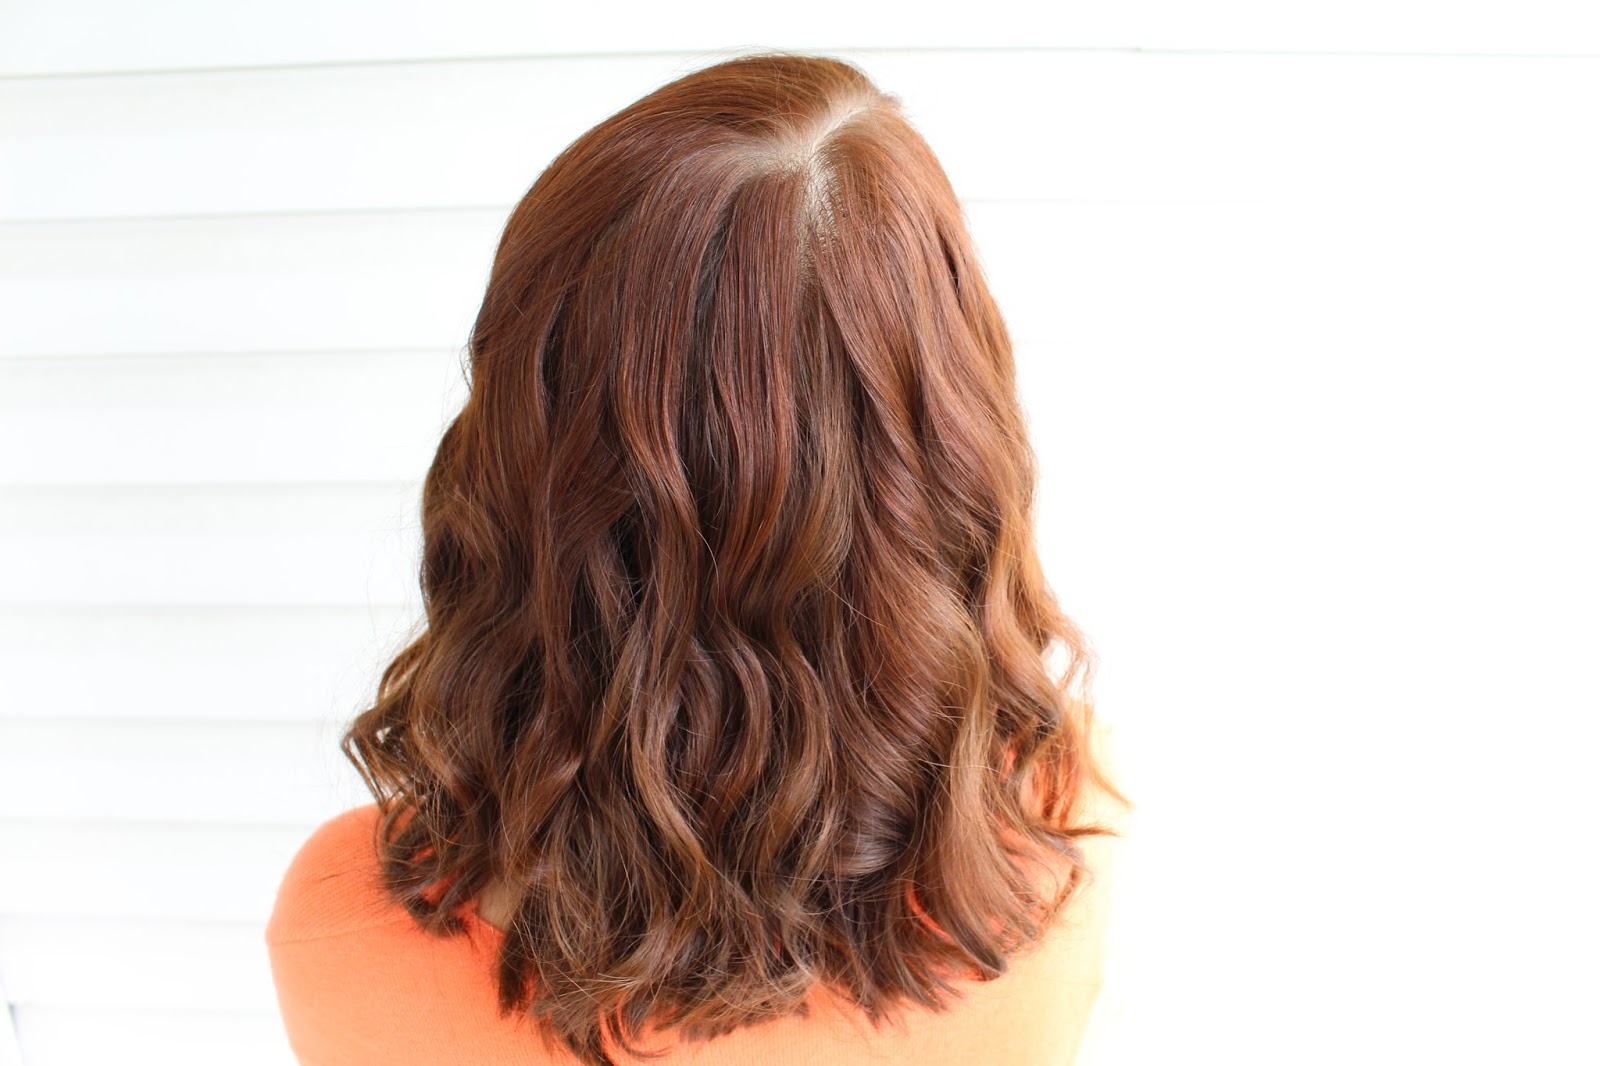 Lainamarie91 My Henna Hair July August 2015 Red And Black Henna